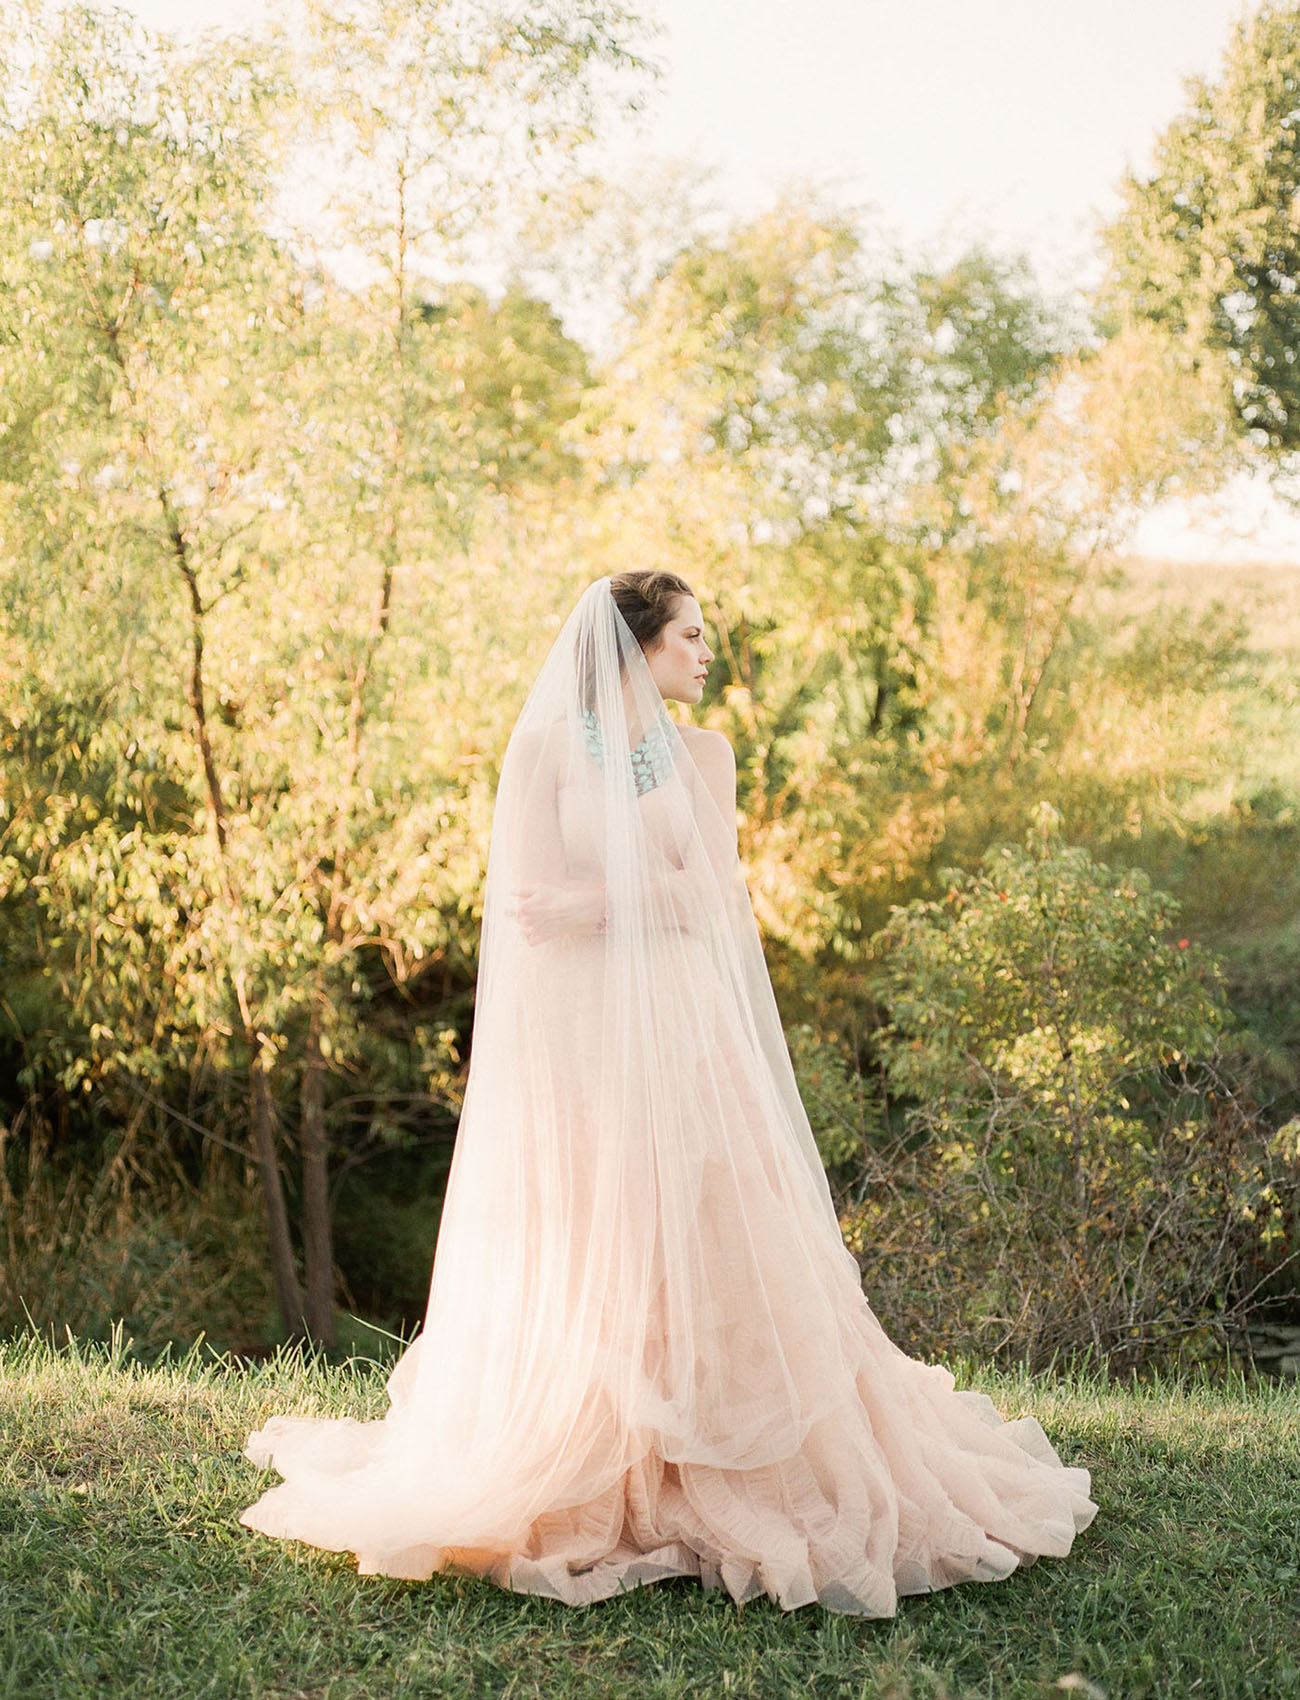 The bride was wearing a gorgeous wedding gown in blush and a matching veil, both with texture